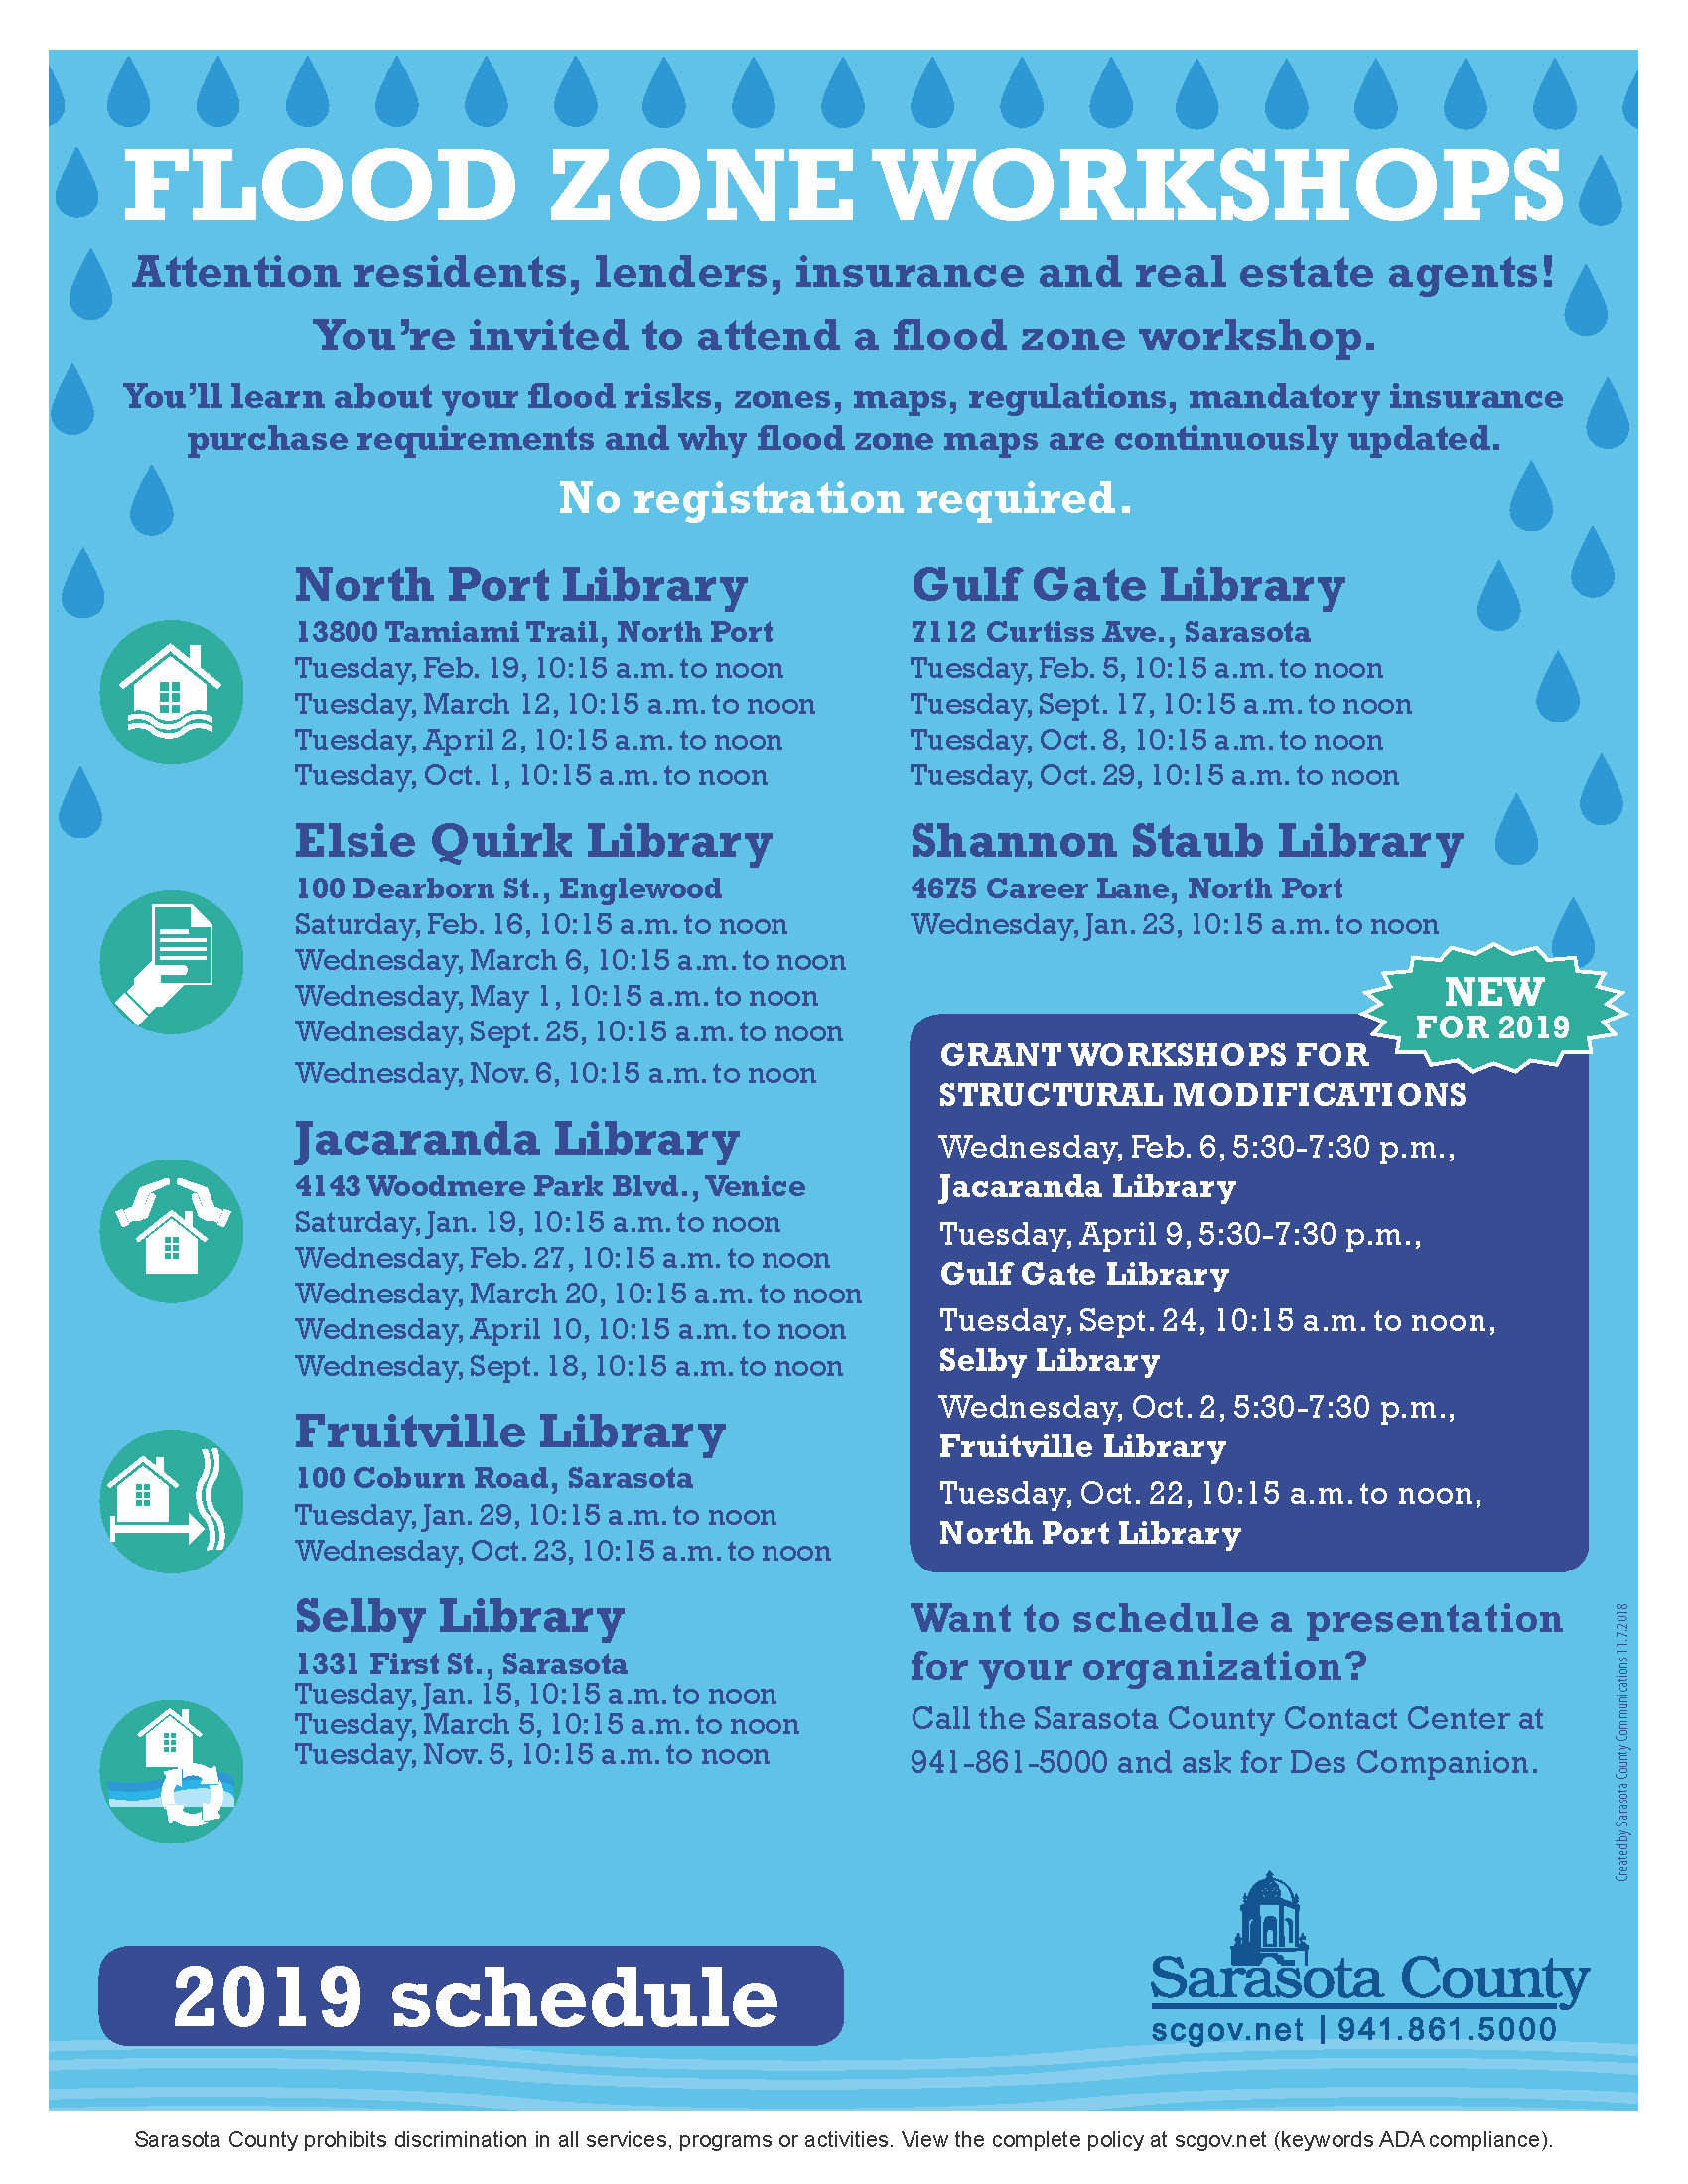 Flood Zone Workshop Flyer_2019